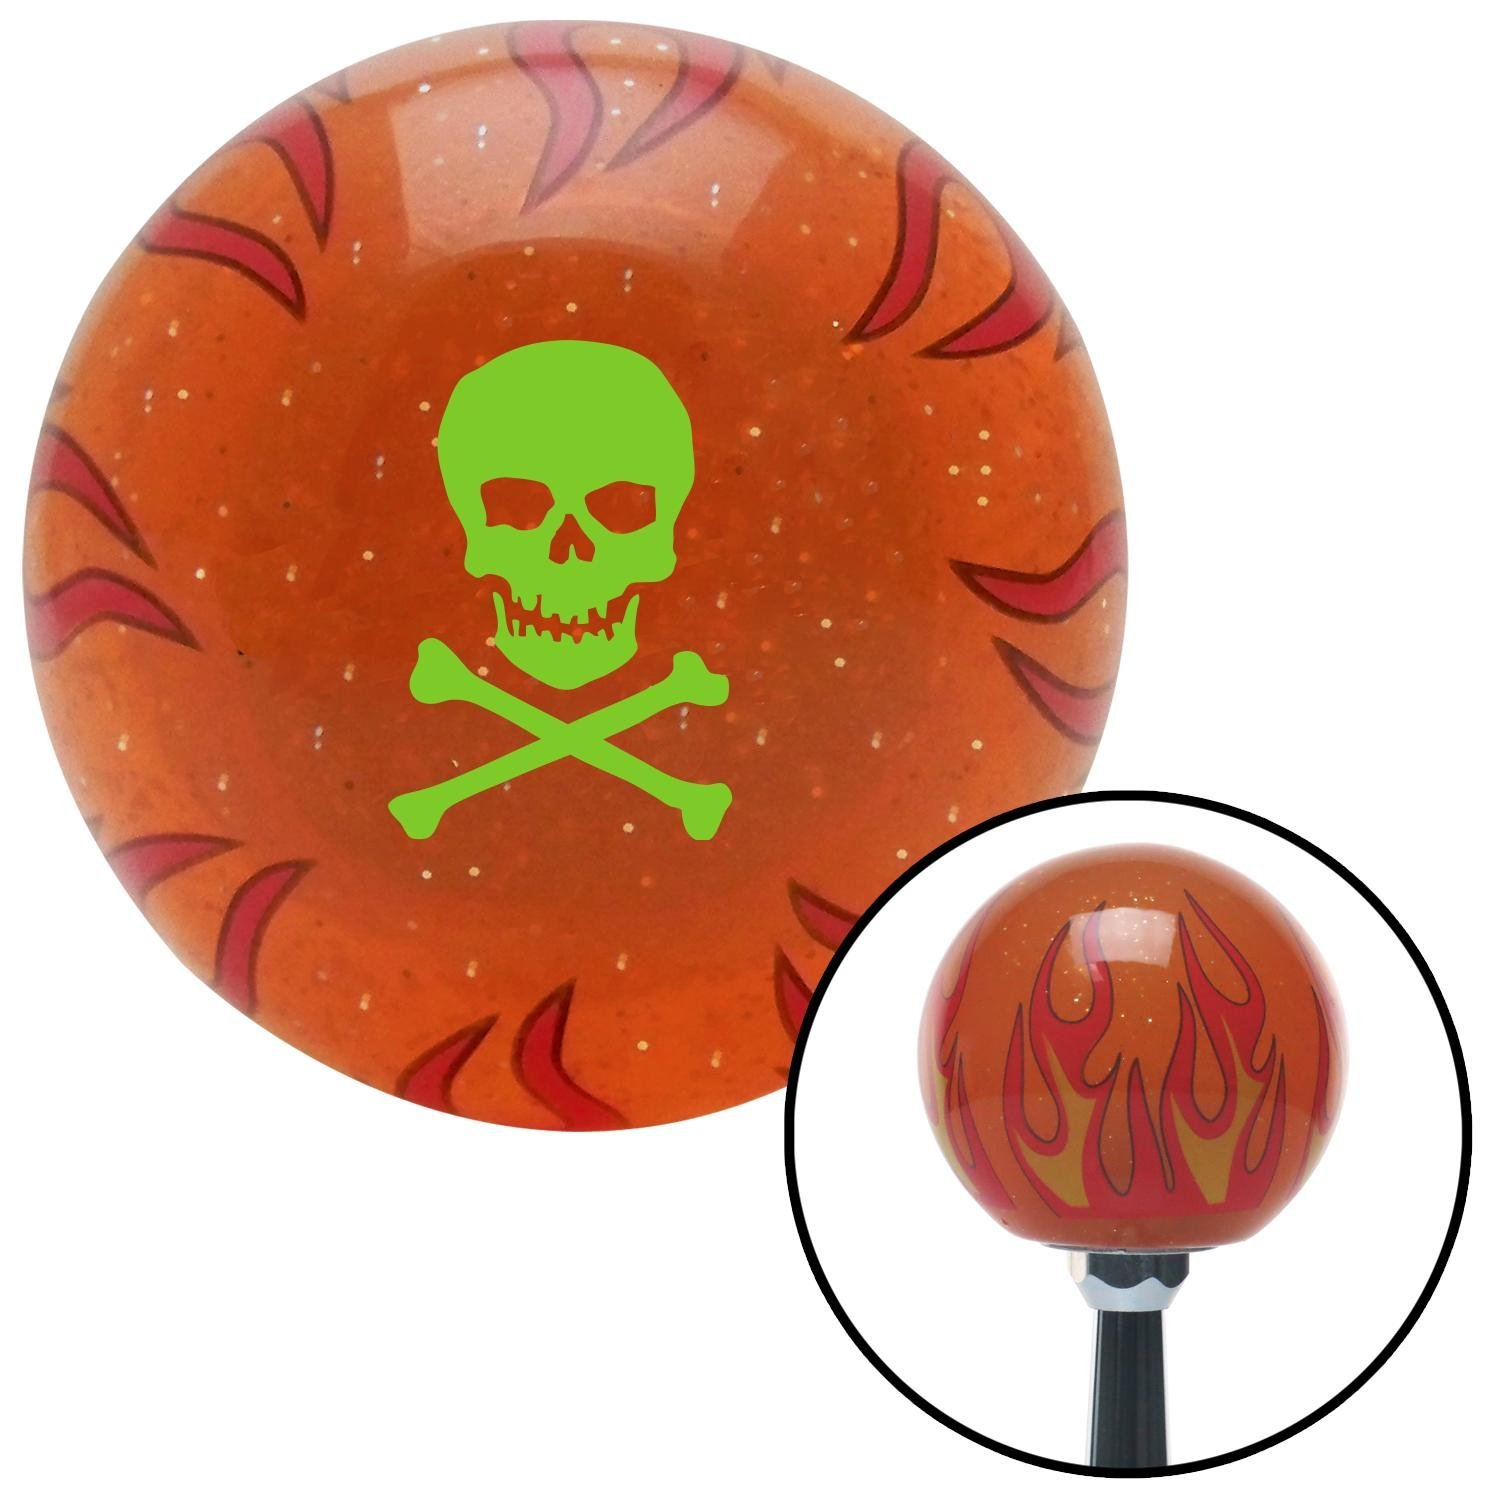 Green Skull /& Bones American Shifter 255559 Orange Flame Metal Flake Shift Knob with M16 x 1.5 Insert